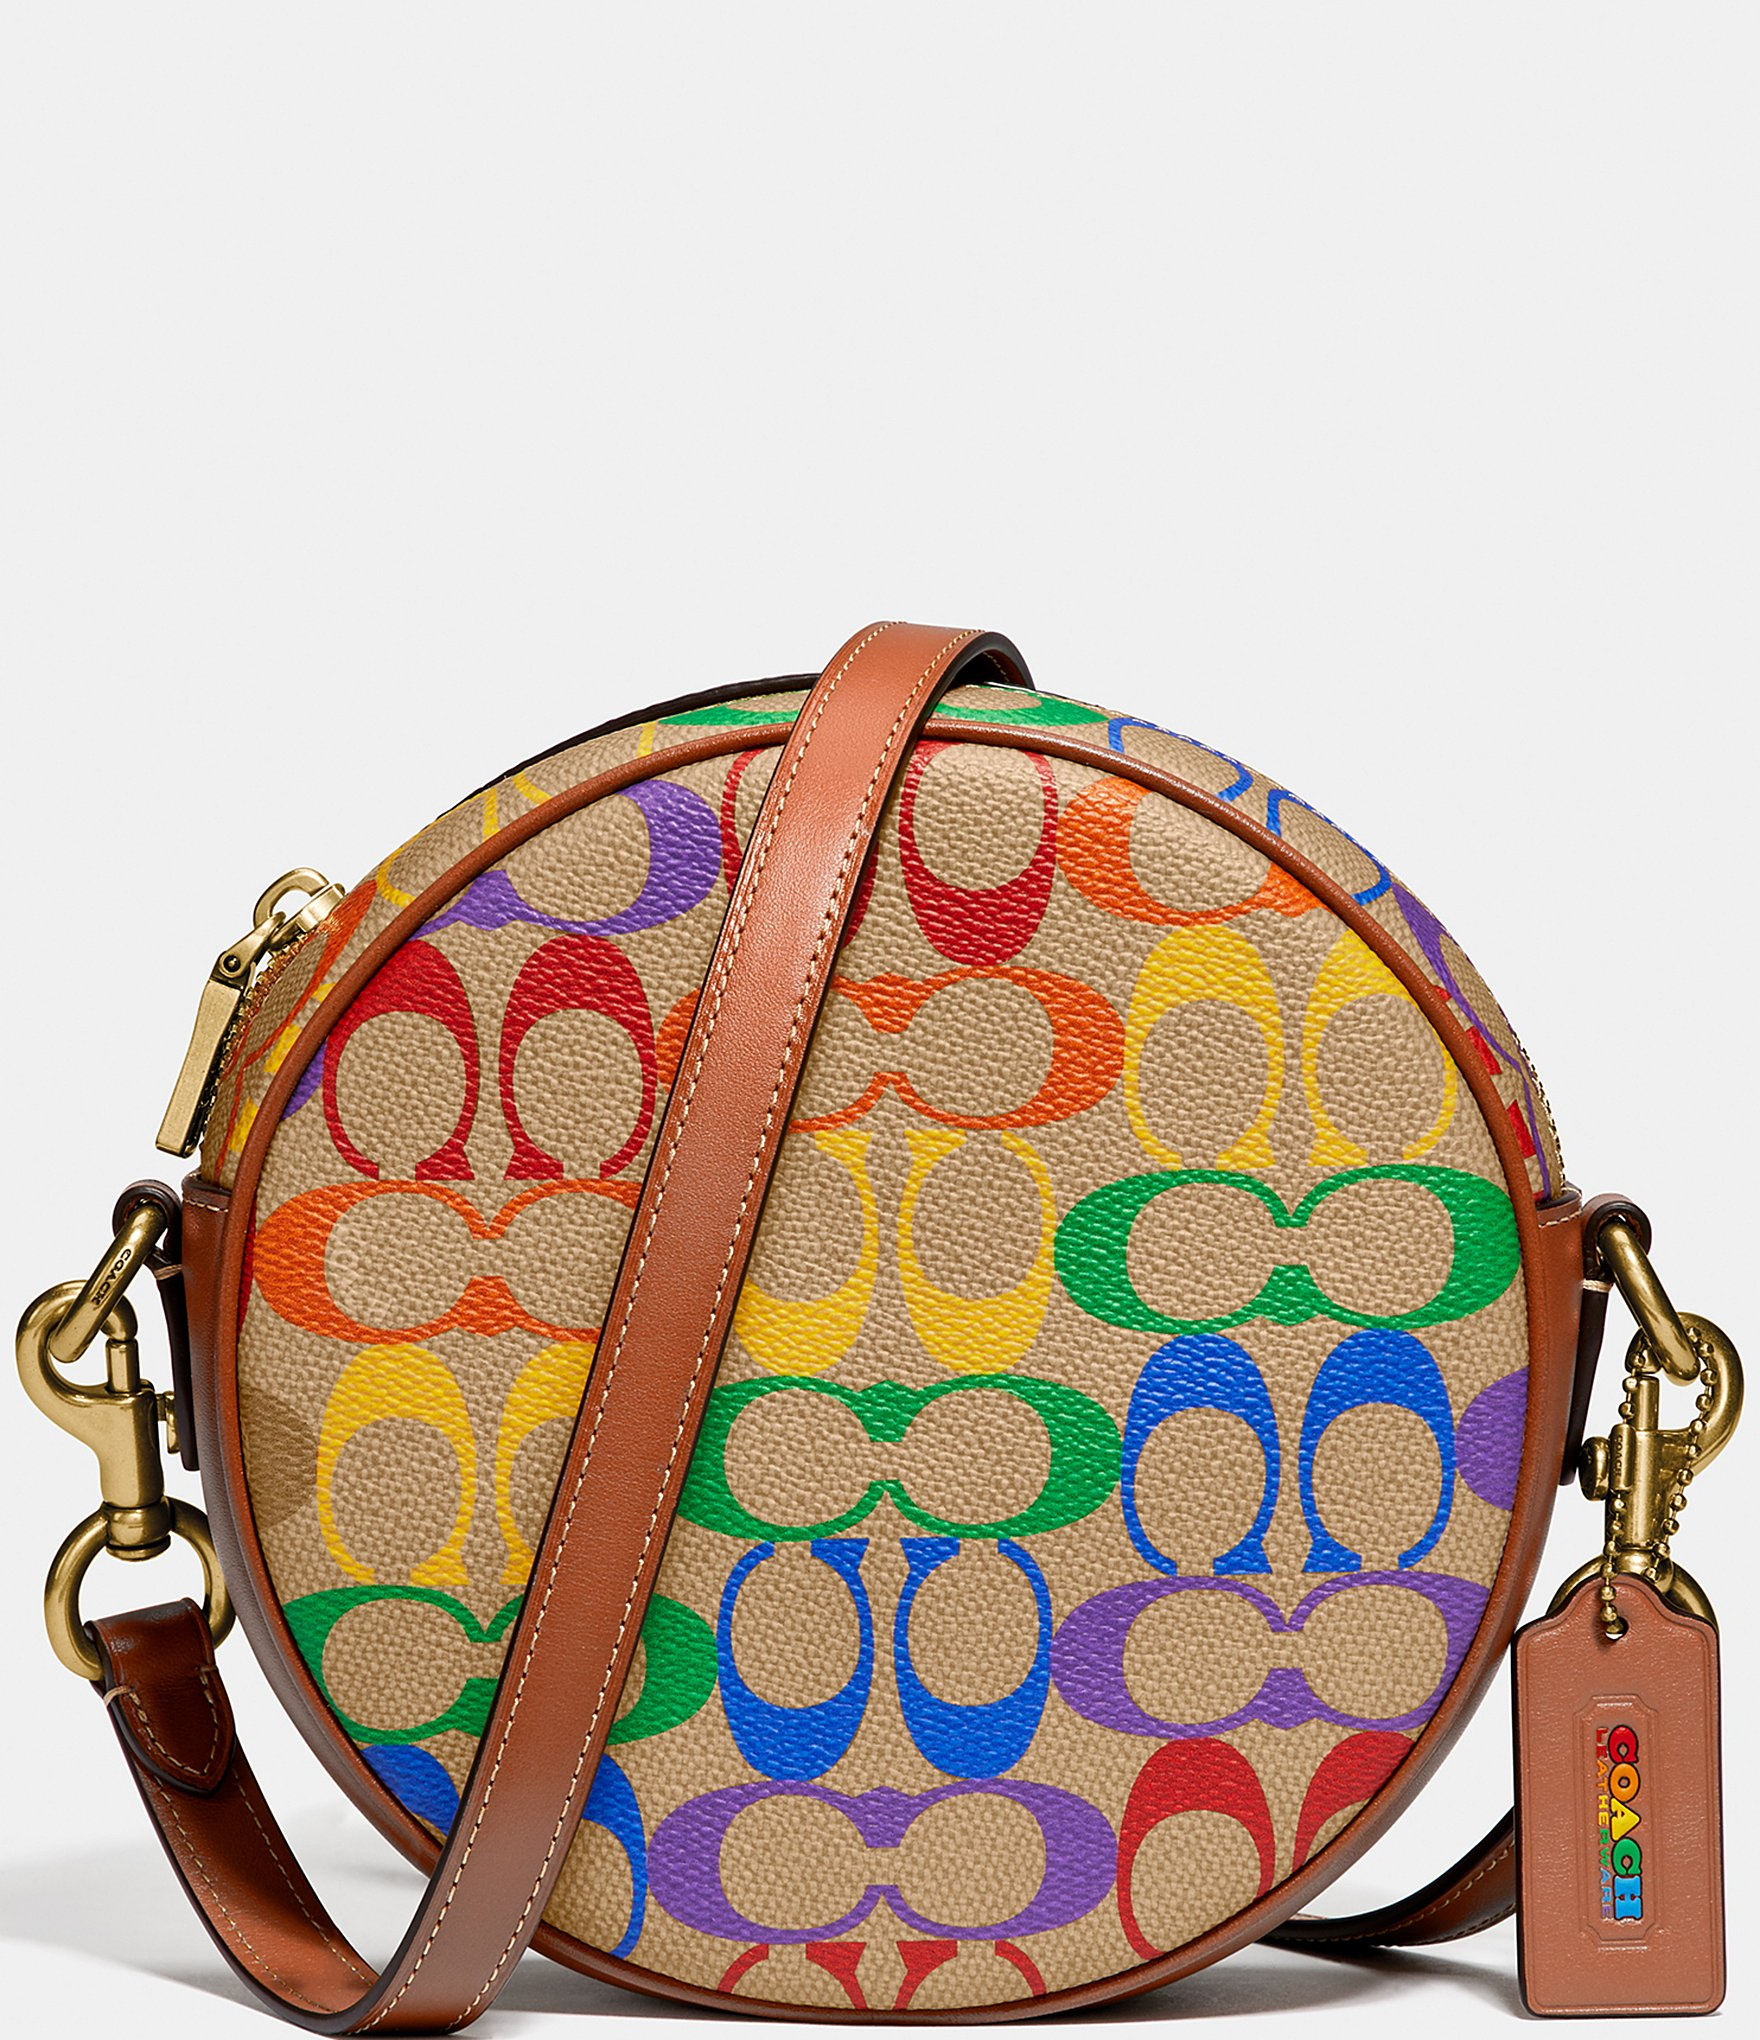 COACH Womens Fold-Over Chain Clutch Rainbow Rose Black Multi Flower Crossgrain Patent Leather B